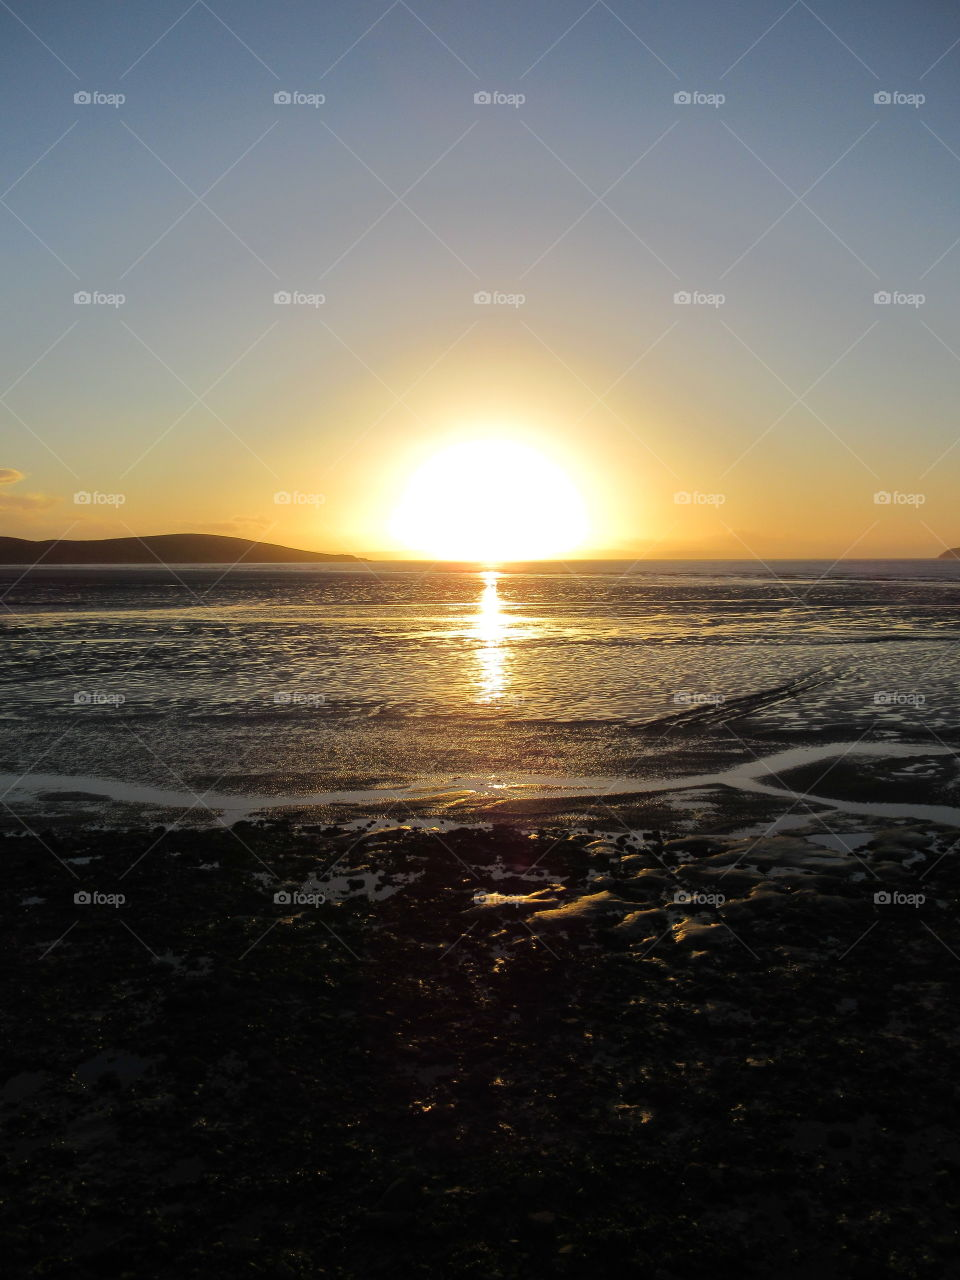 Sunset overlooking Weston-s-mare beach